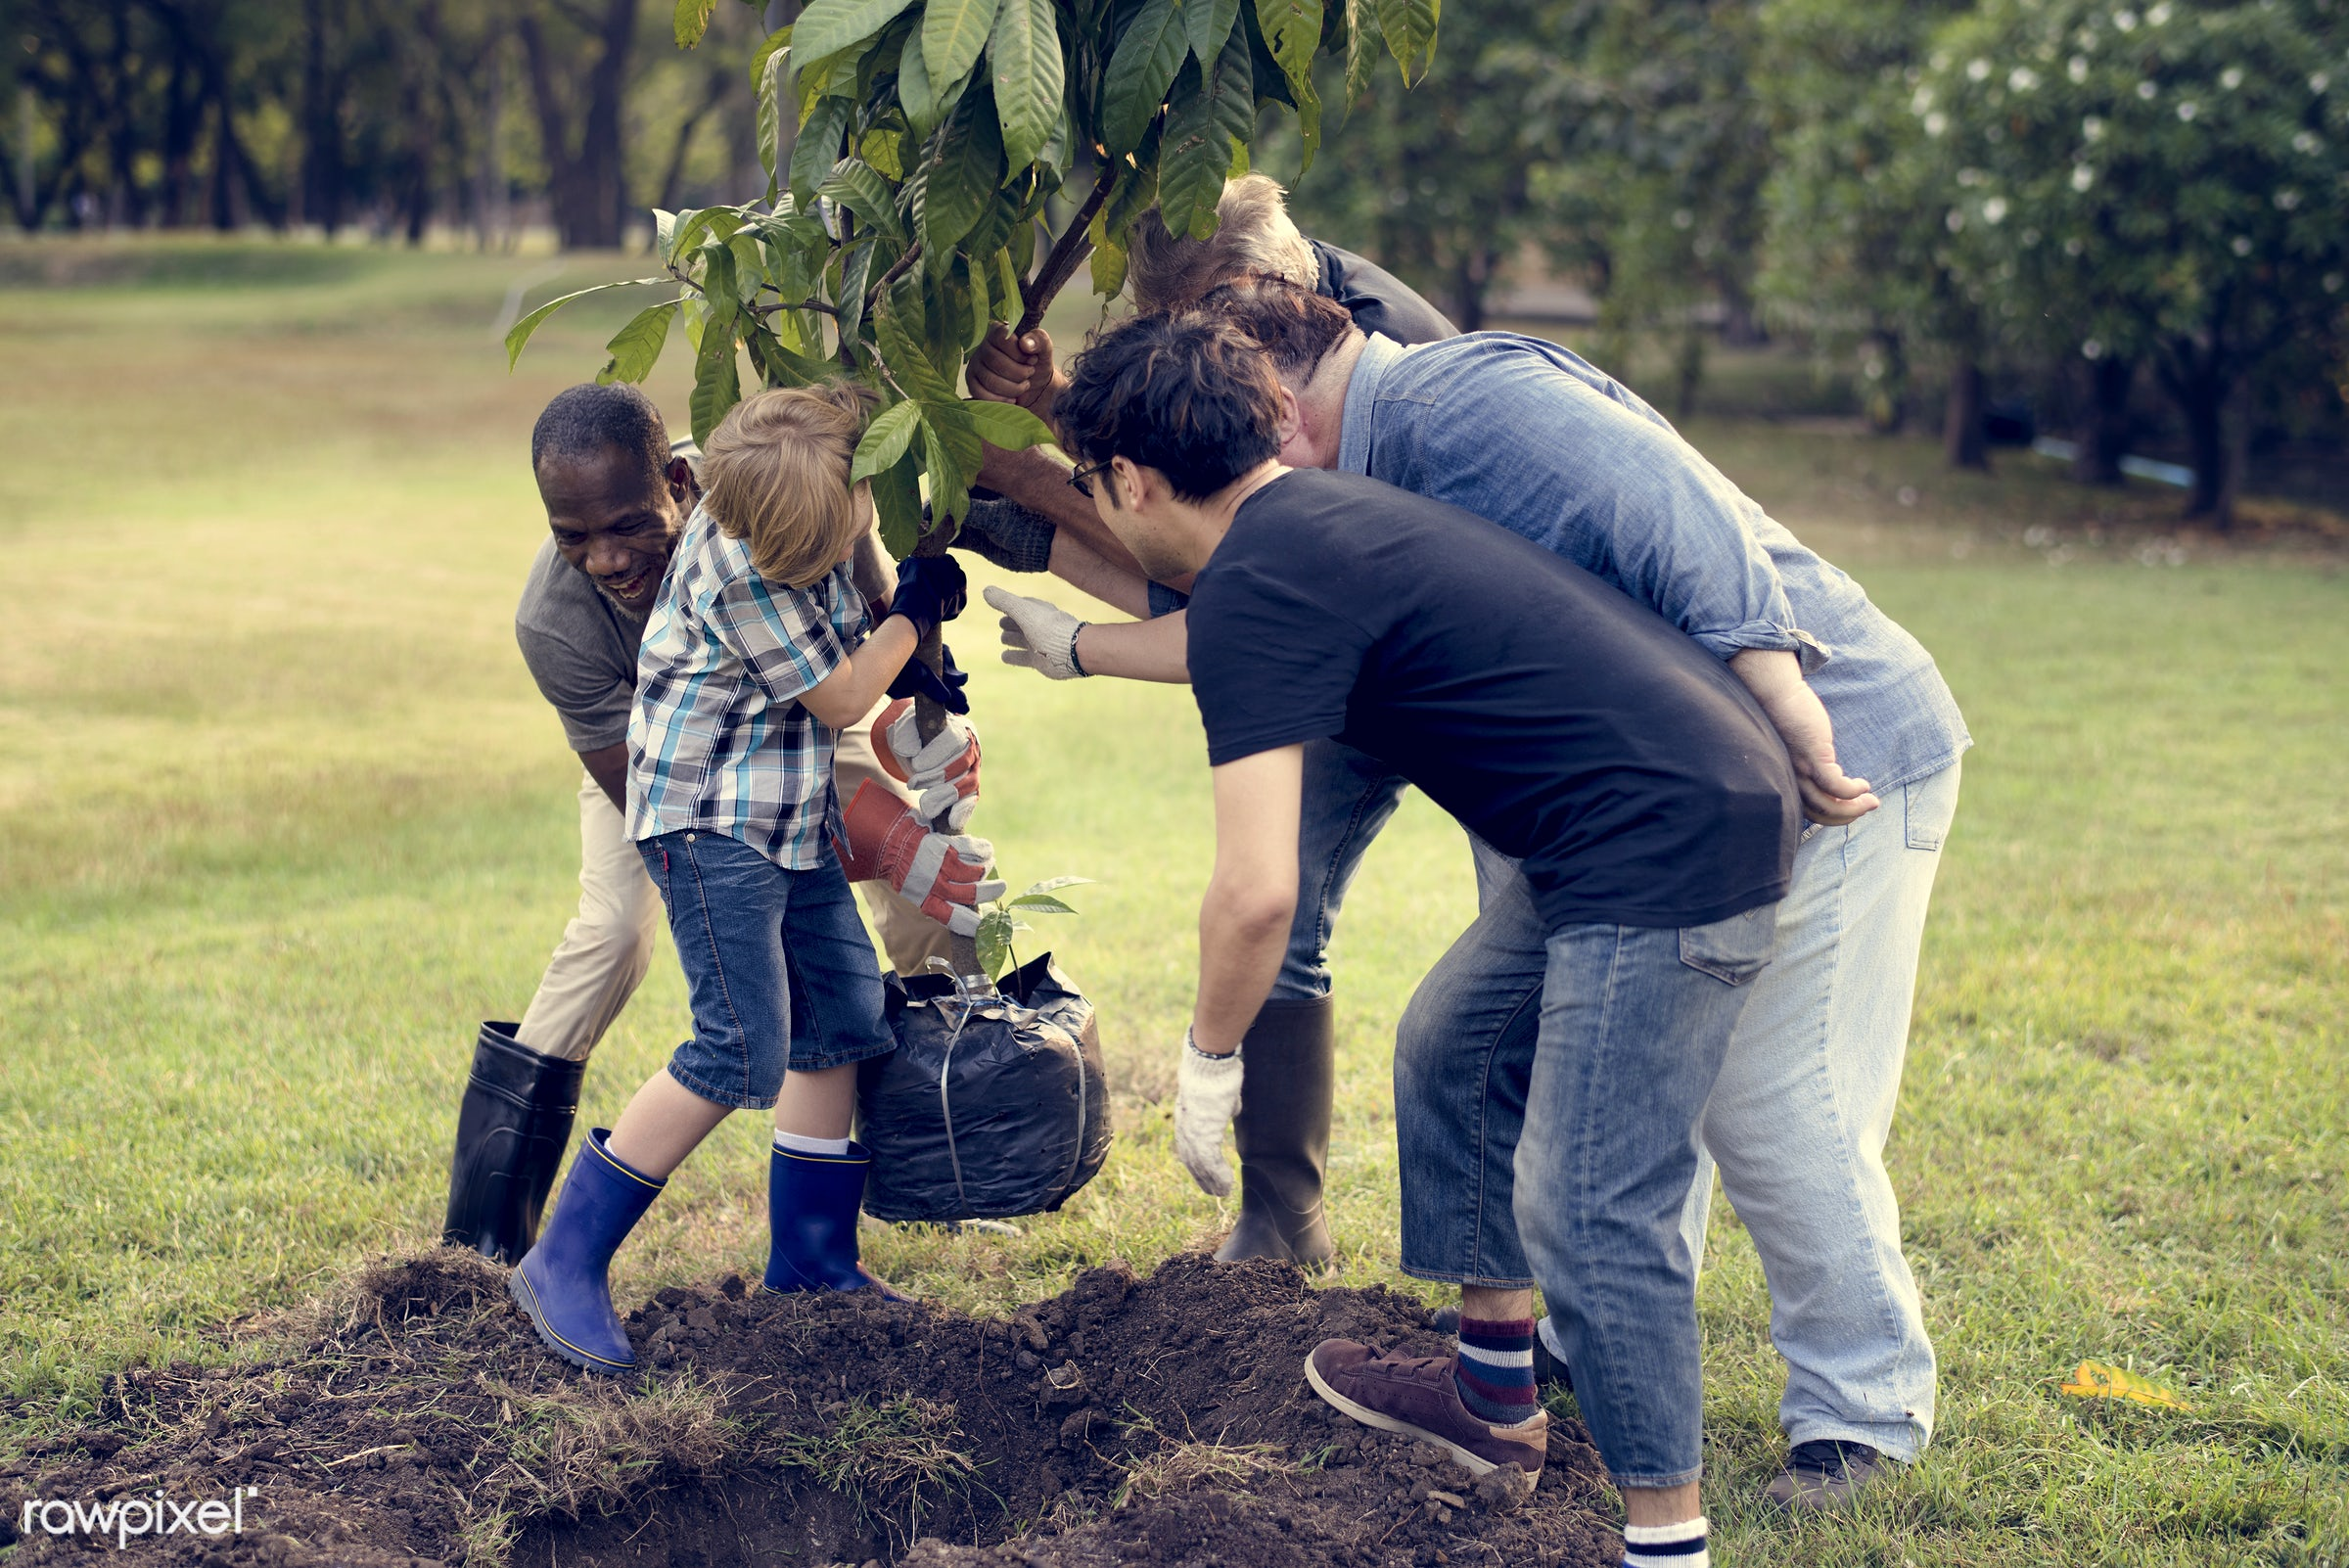 person, community service, leaves, people, together, kid, help, tree, nature, friendship, dirt, responsibility, support,...